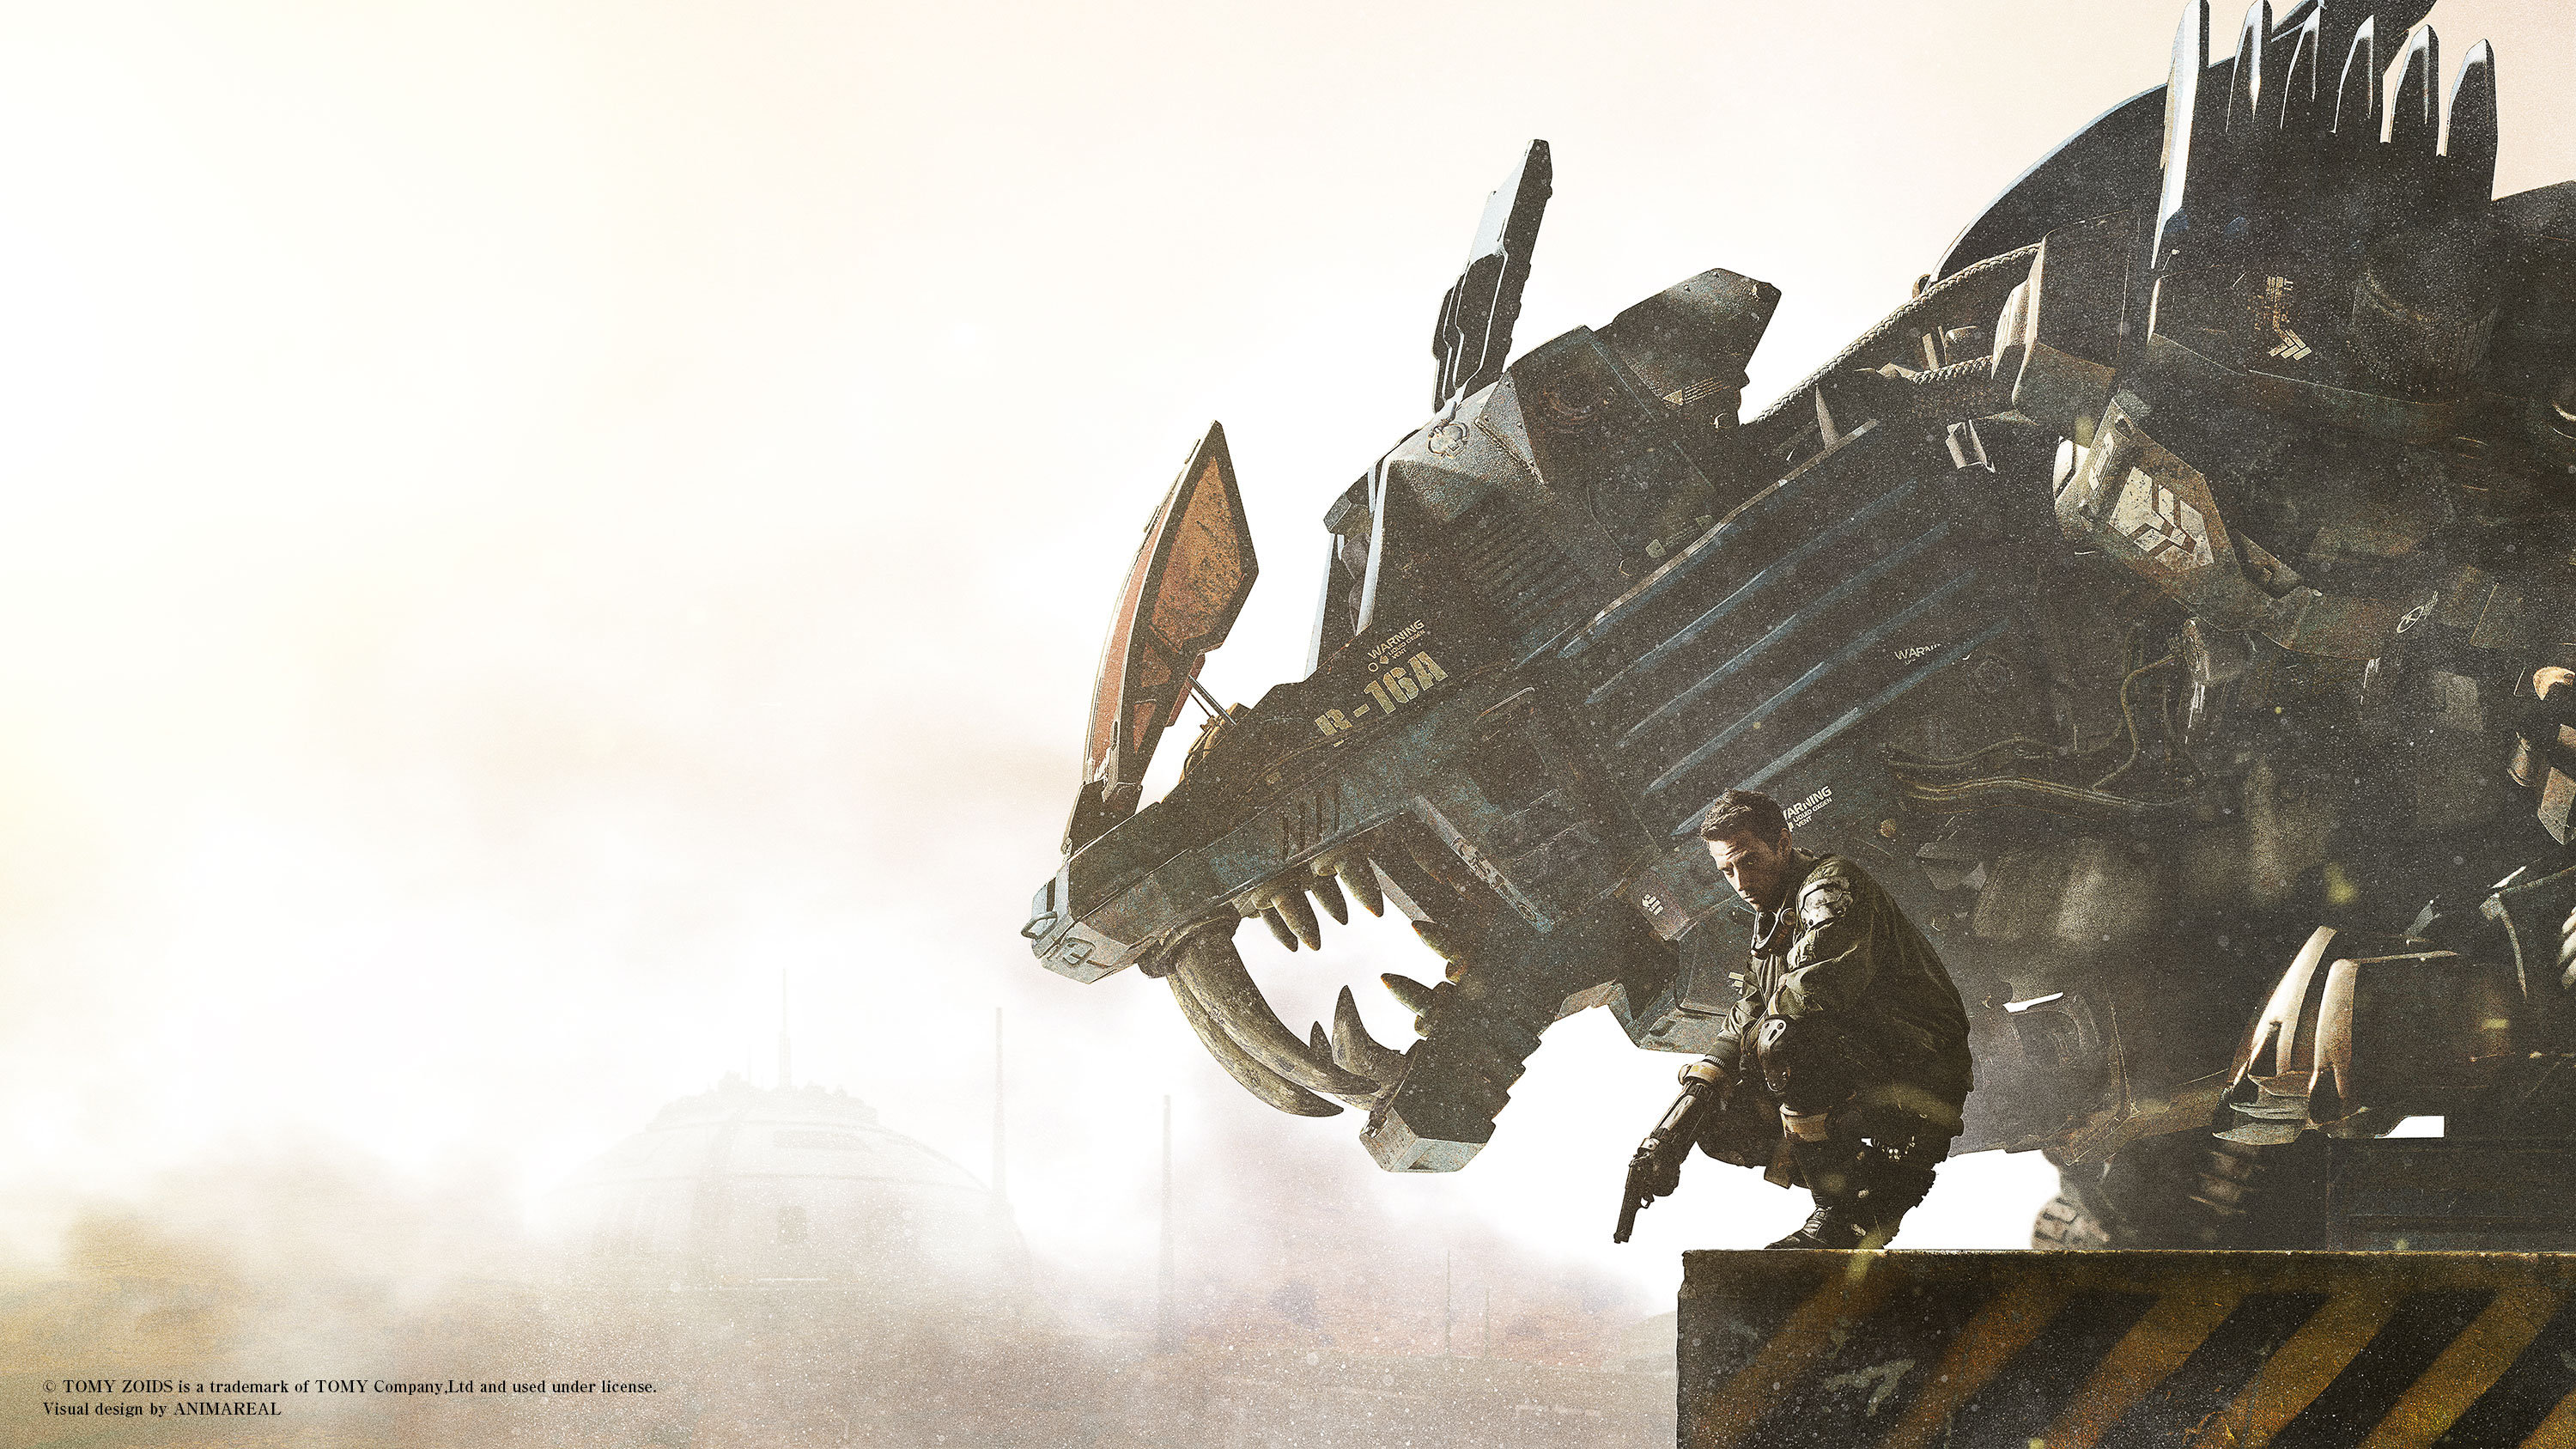 ©TOMY ZOIDS is a trademark of TOMY Company,Ltd and used under license. Visual design by ANIMAREAL